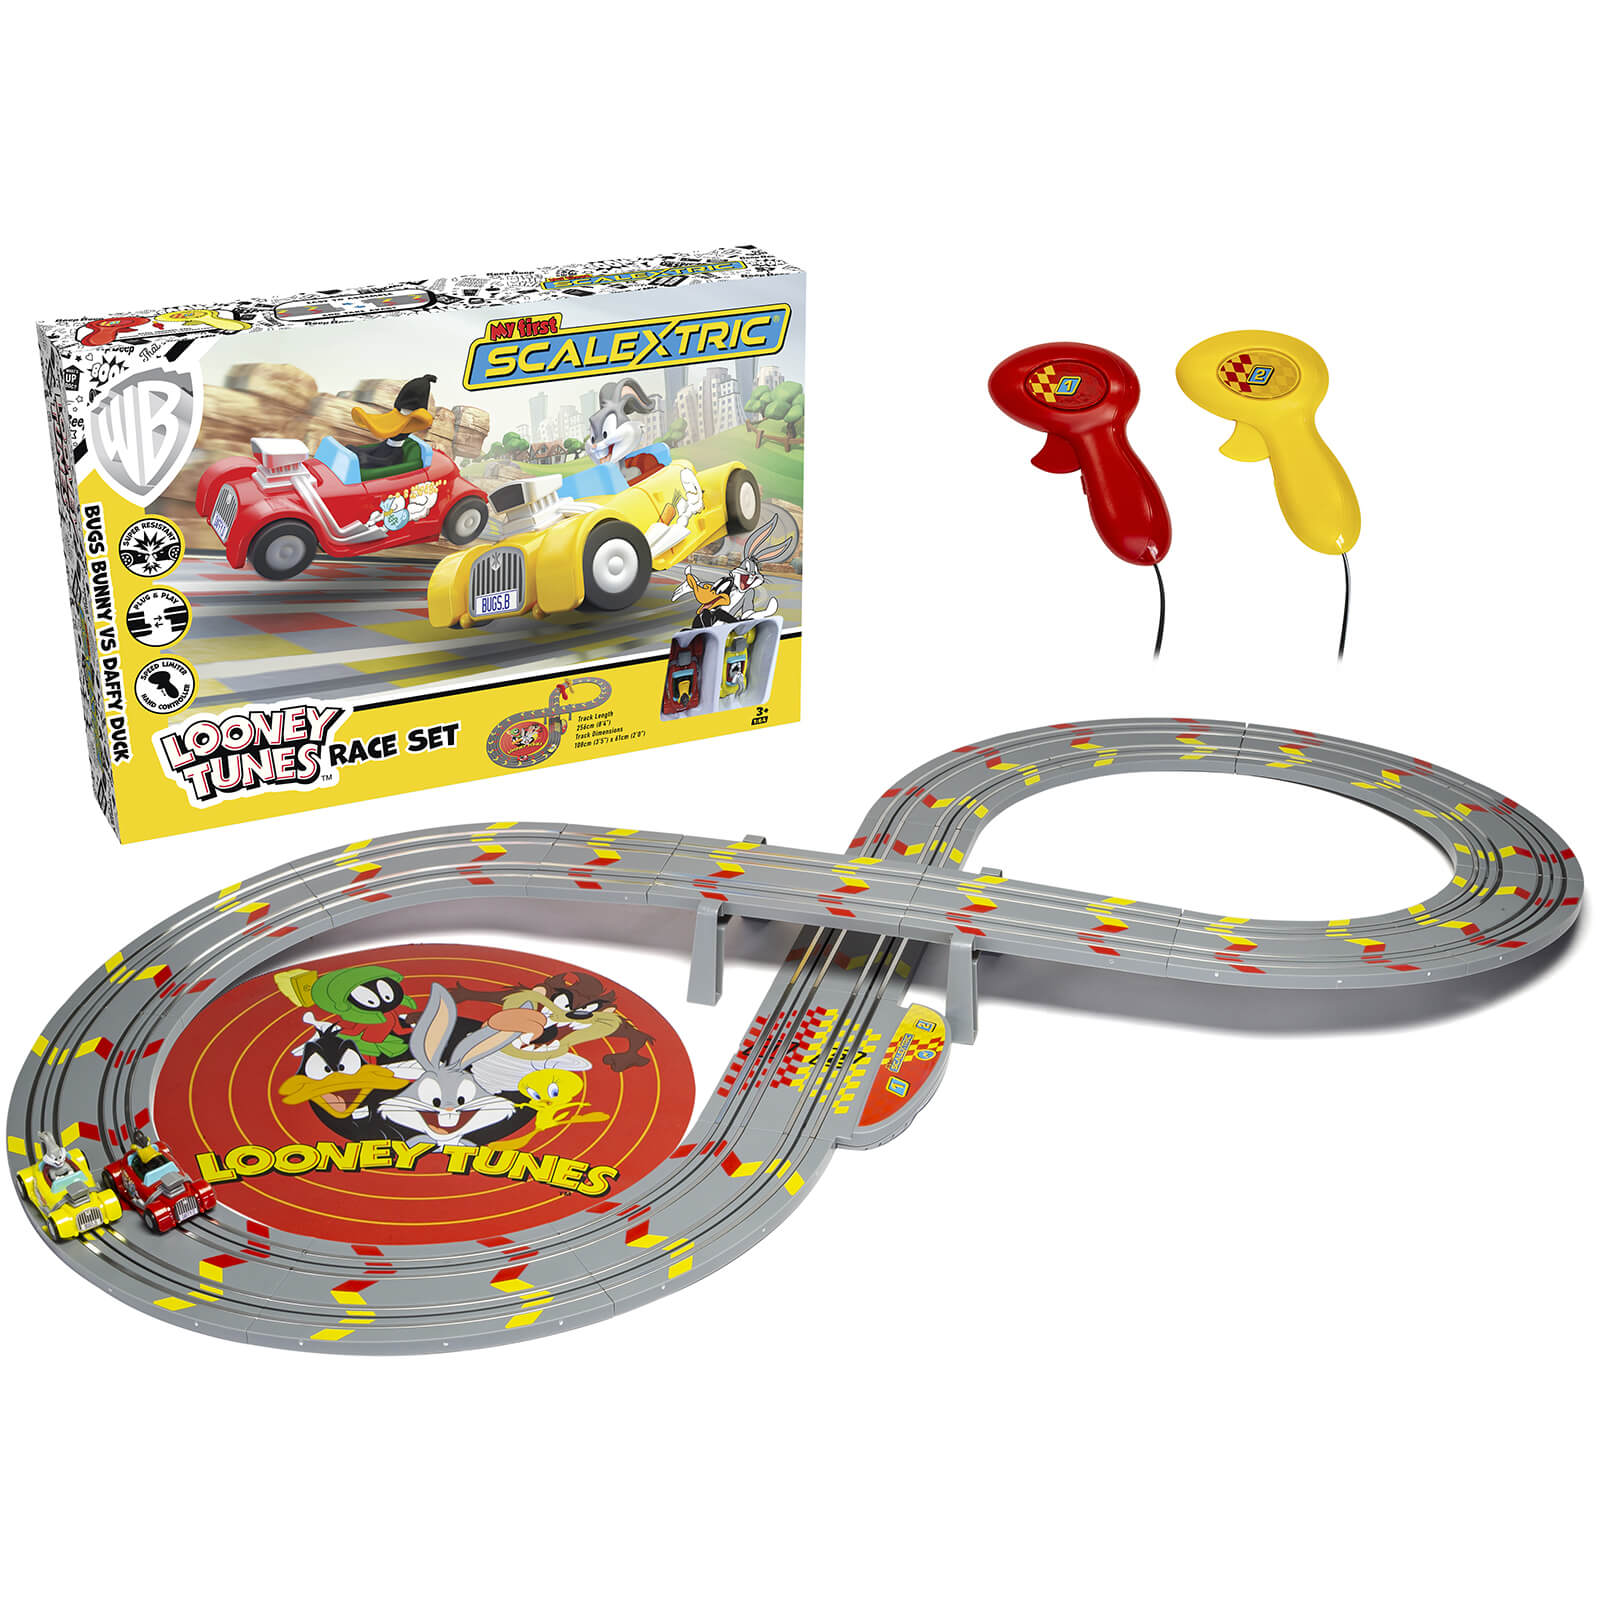 Micro Scalextric My First Looney Tunes with Bugs Bunny vs Daffy Duck Battery Powered Race Set